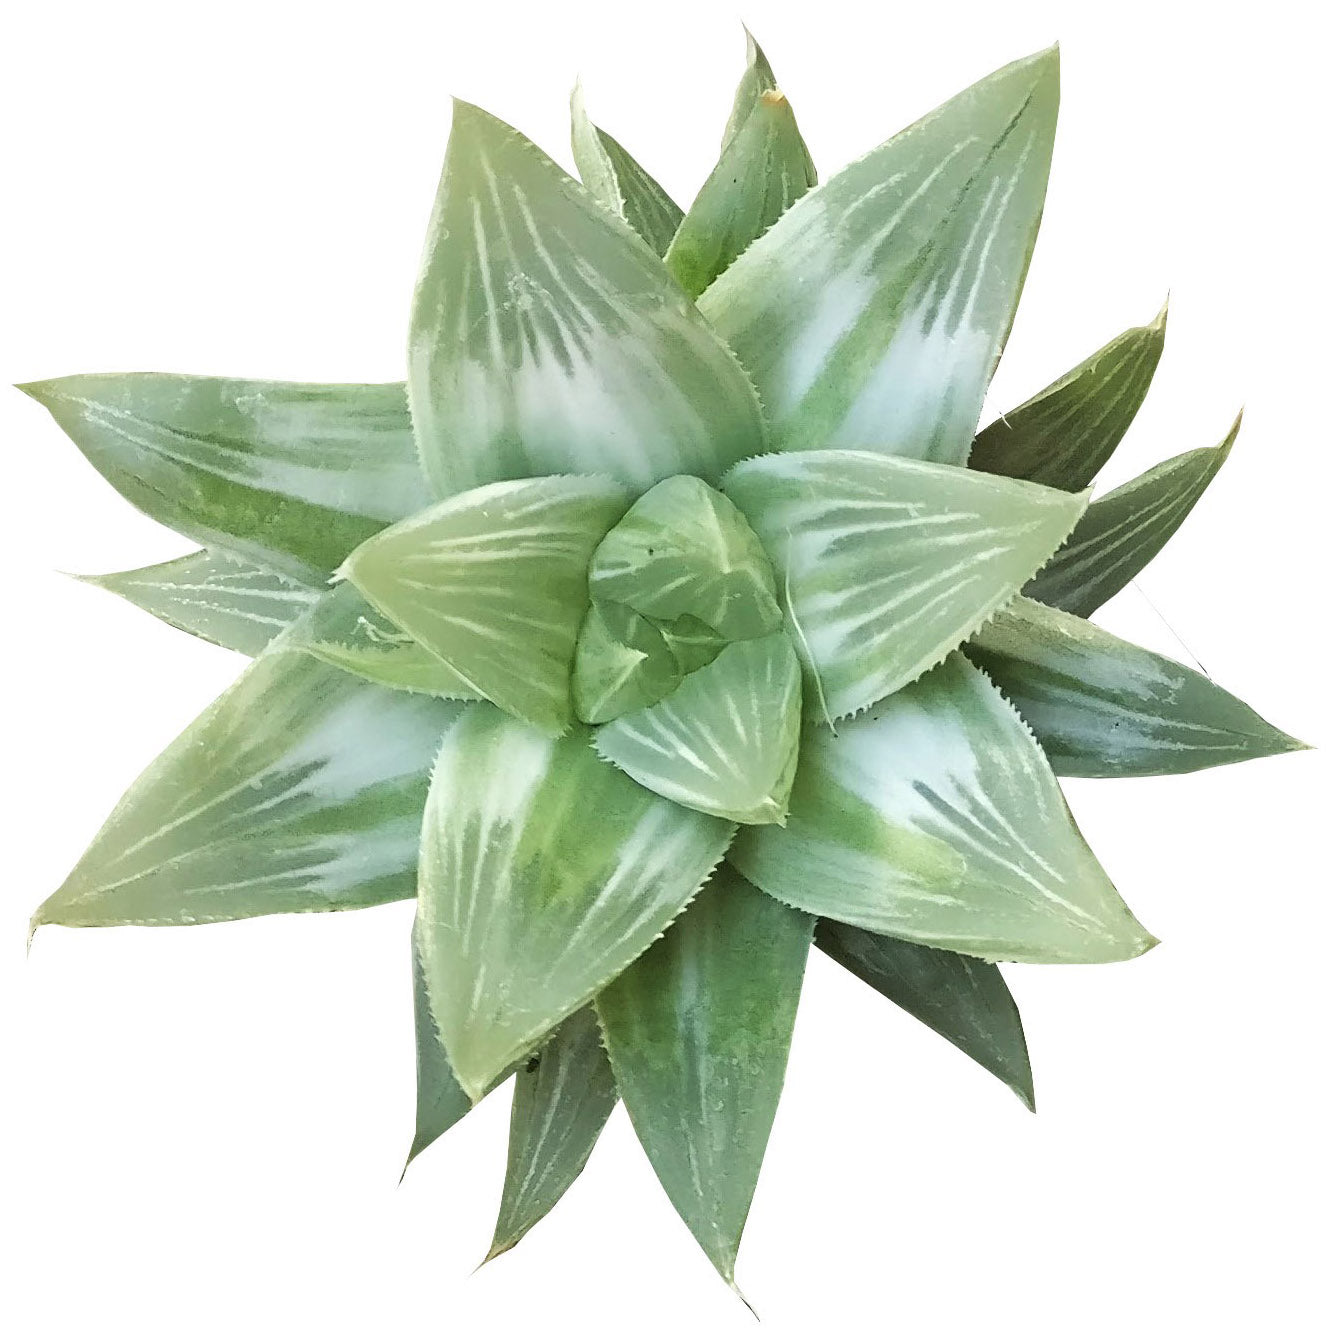 Silver haworthia for sale, succulent care tips, succulents shop in California, succulents garden, succulent care guide, Succulents shop near me, succulent care, how to grow succulents, Succulents, Silver haworthia in California, How to grow Silver haworthia